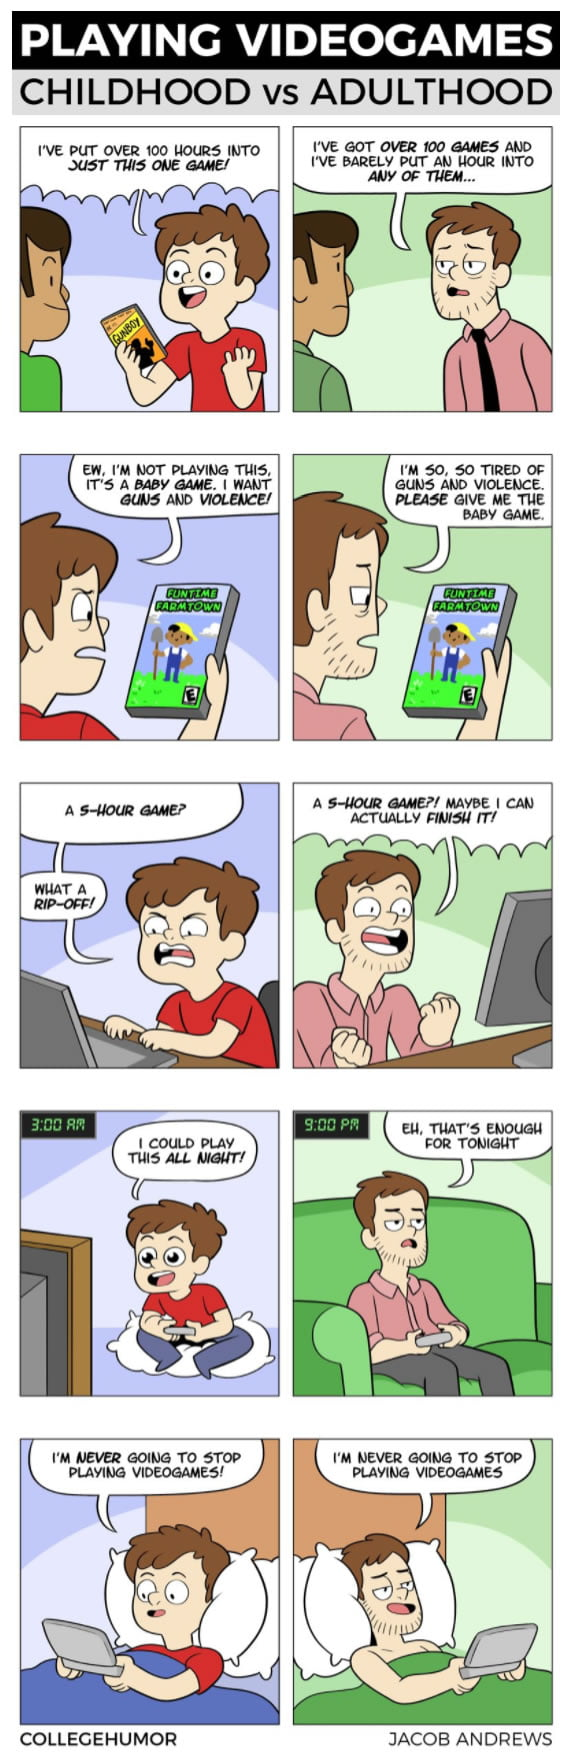 Playing Videogames: Childhood vs Adulthood